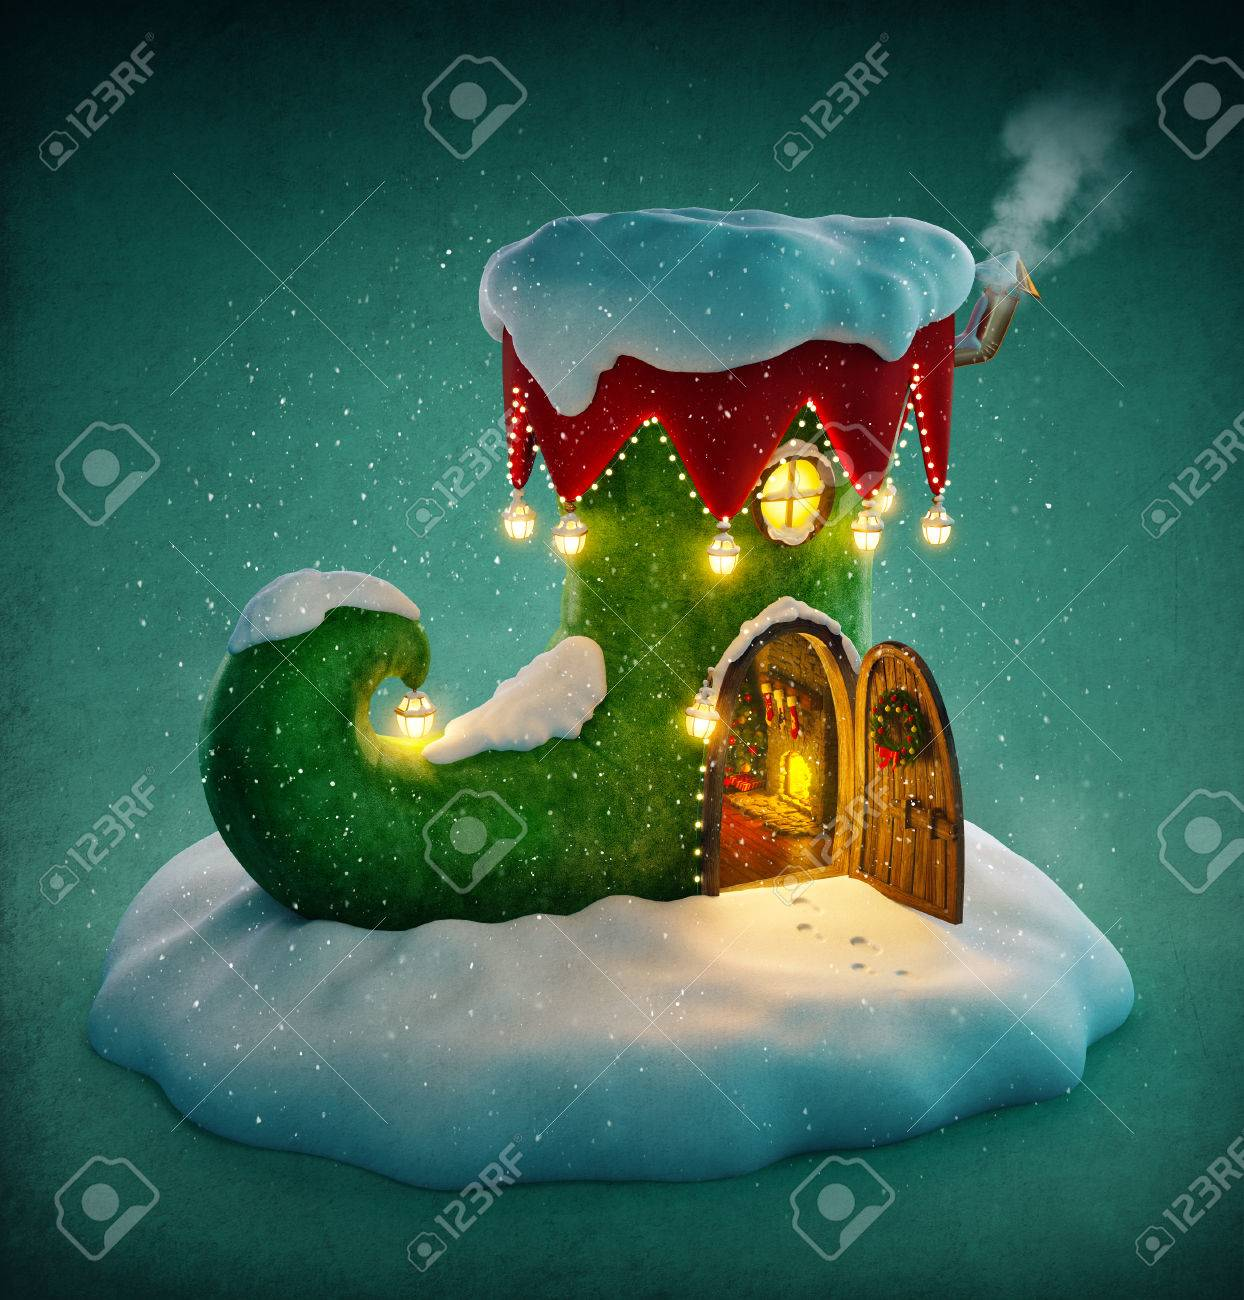 Amazing fairy house decorated at christmas in shape of elfs shoe with opened door and fireplace inside. Unusual christmas illustration. Stock Illustration - 48819018